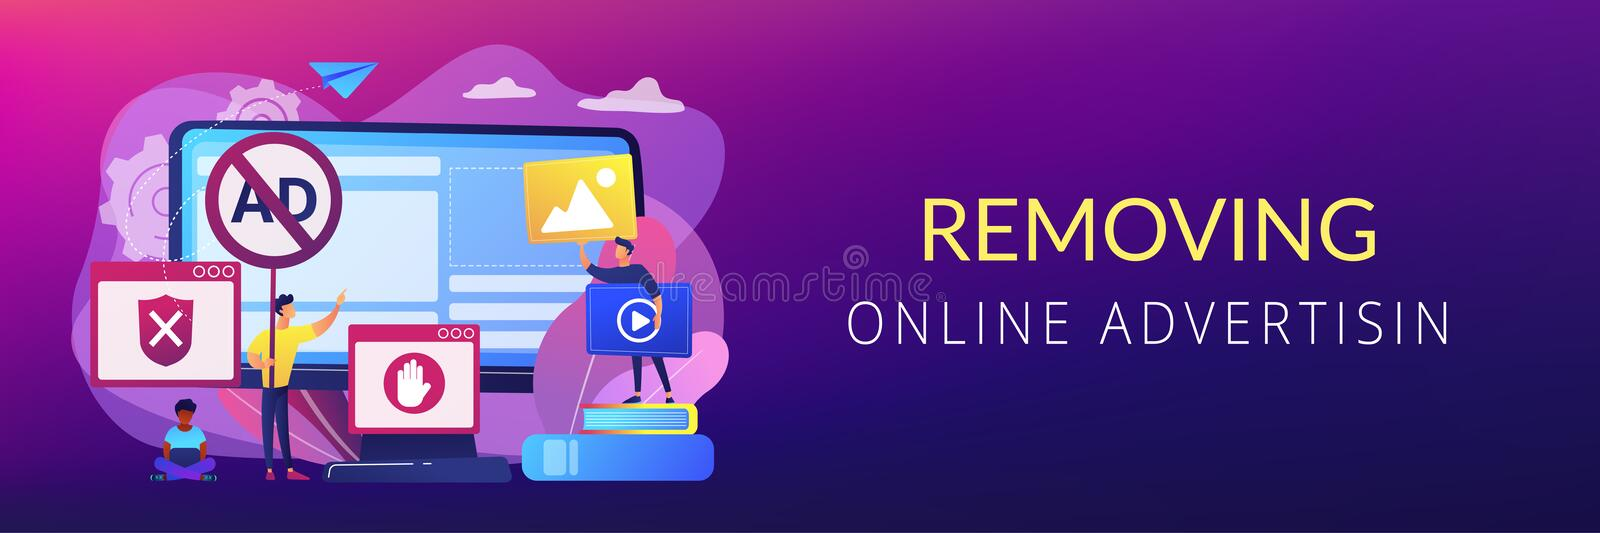 Ad blocking software concept banner header. Programmer developing anti virus program. Banned Internet content. Ad blocking software, removing online advertising royalty free illustration